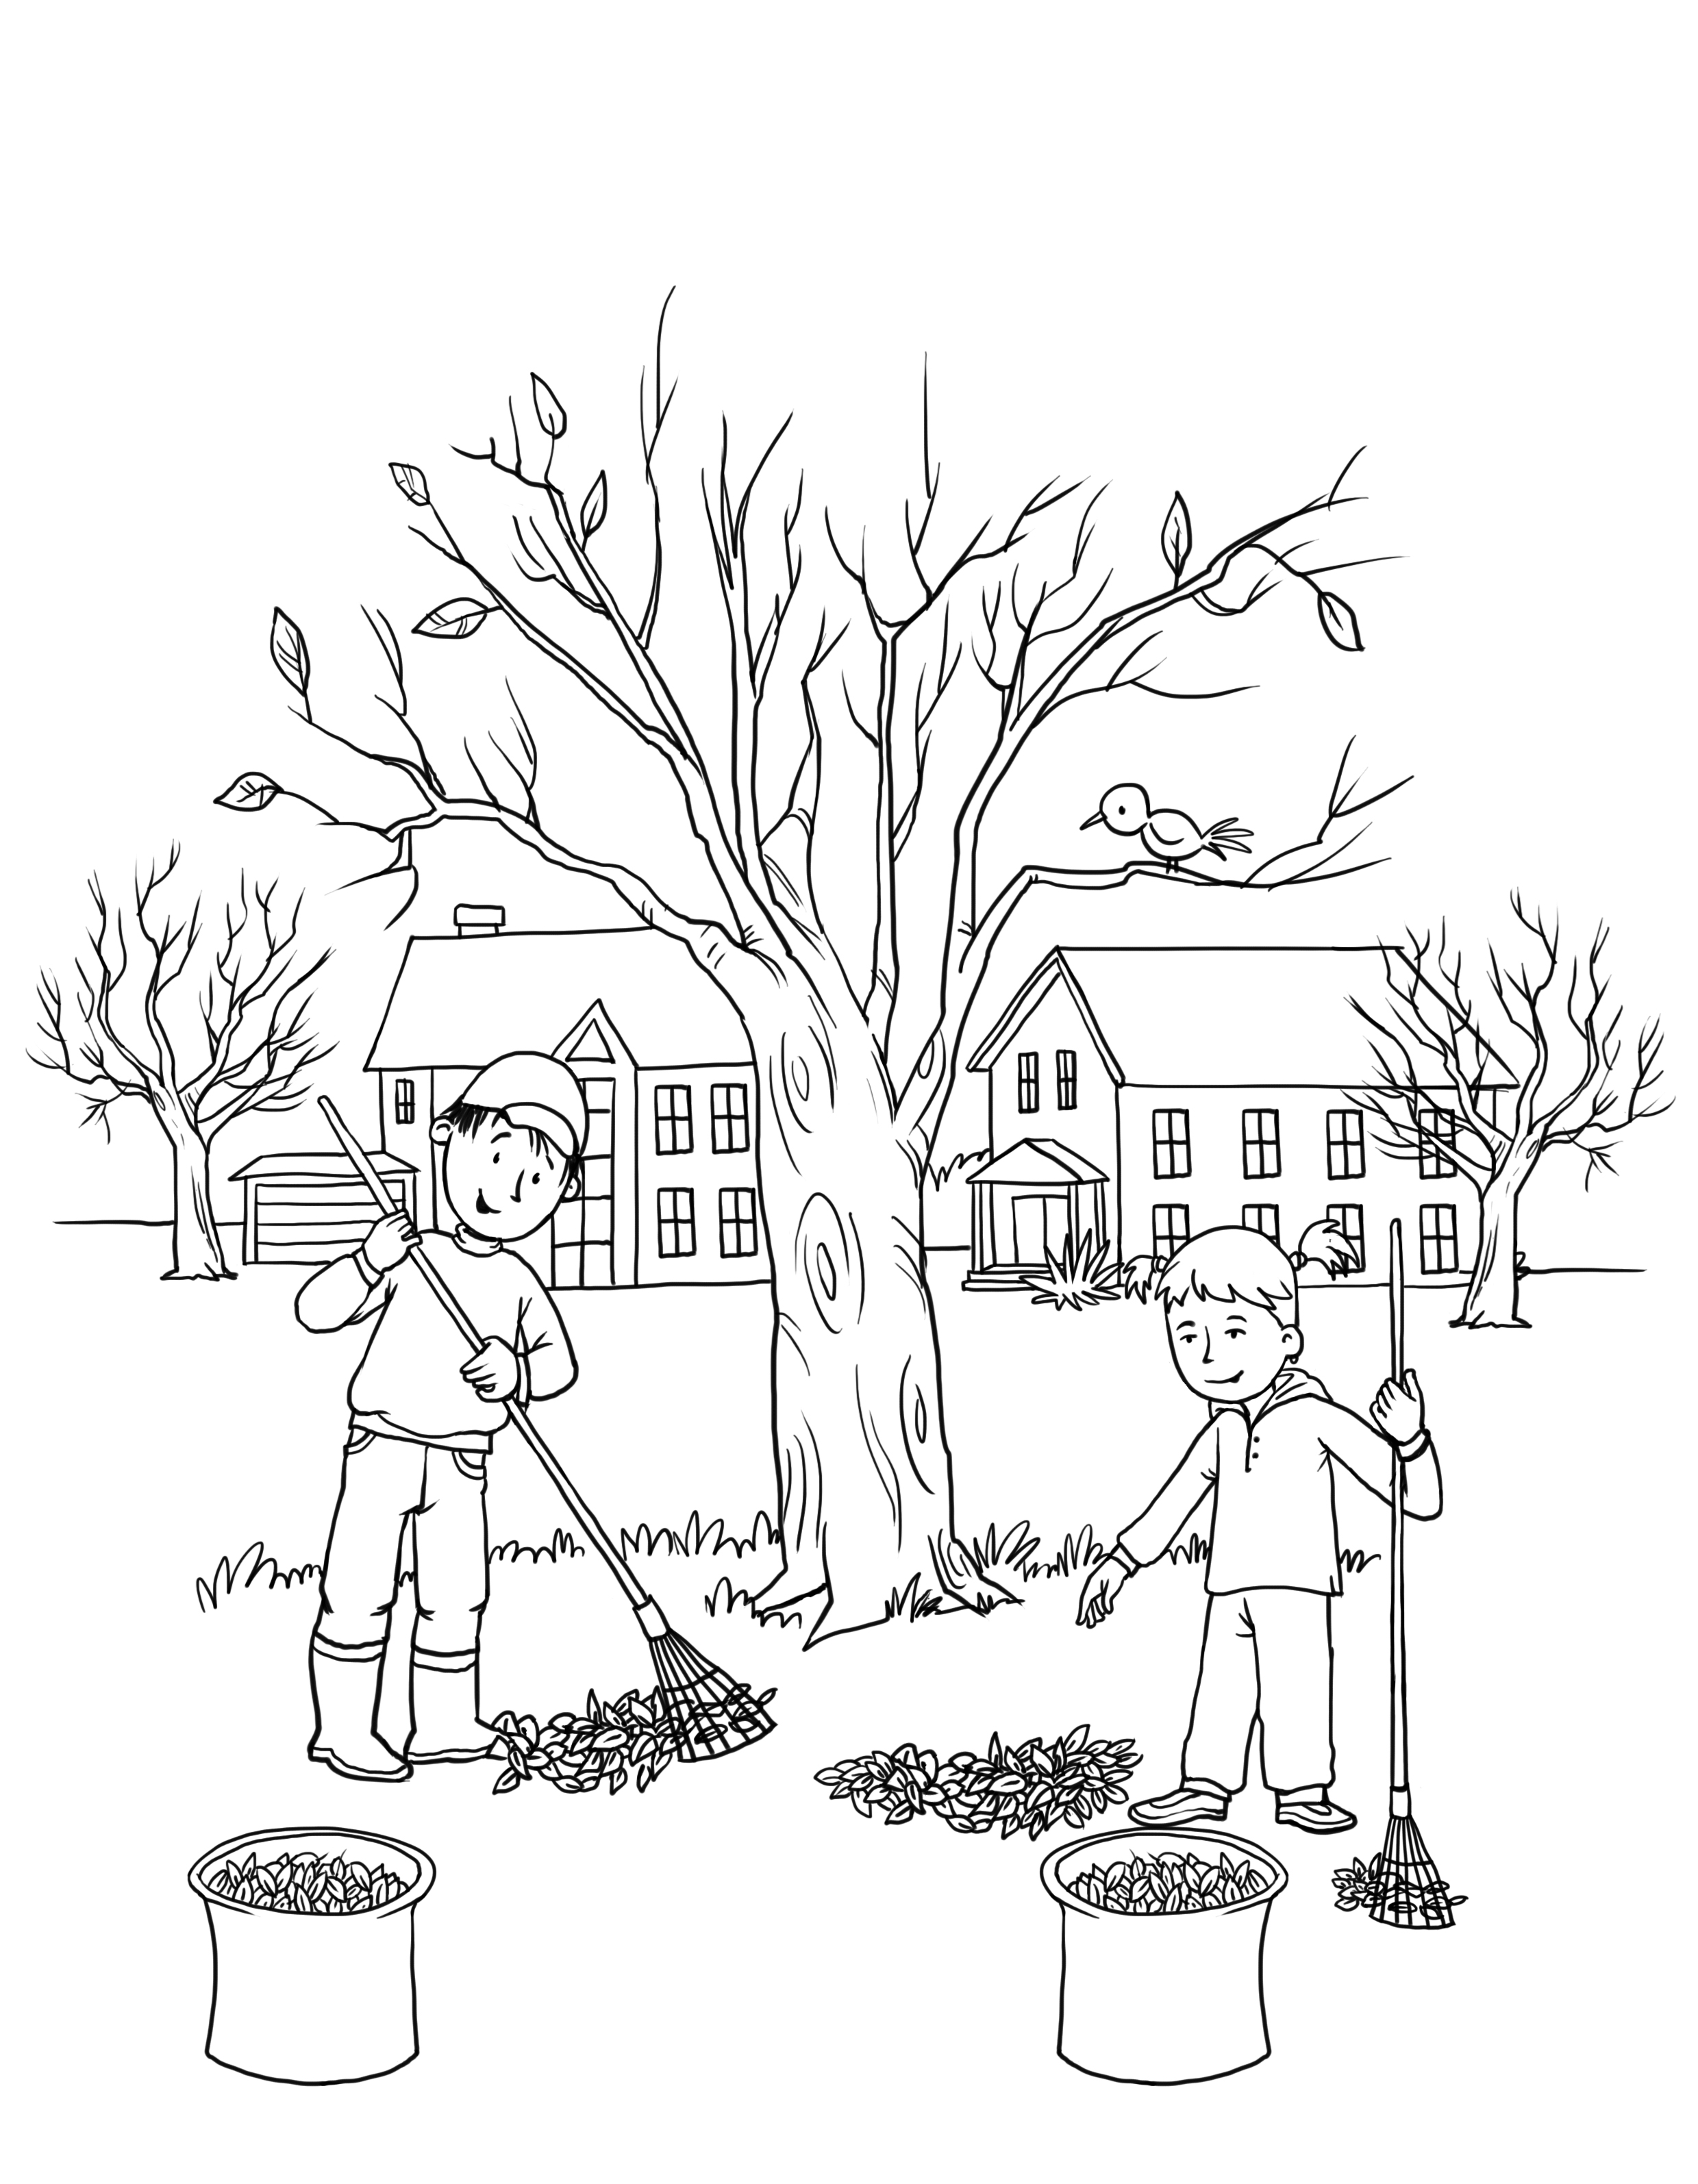 rakes coloring pages - photo#24